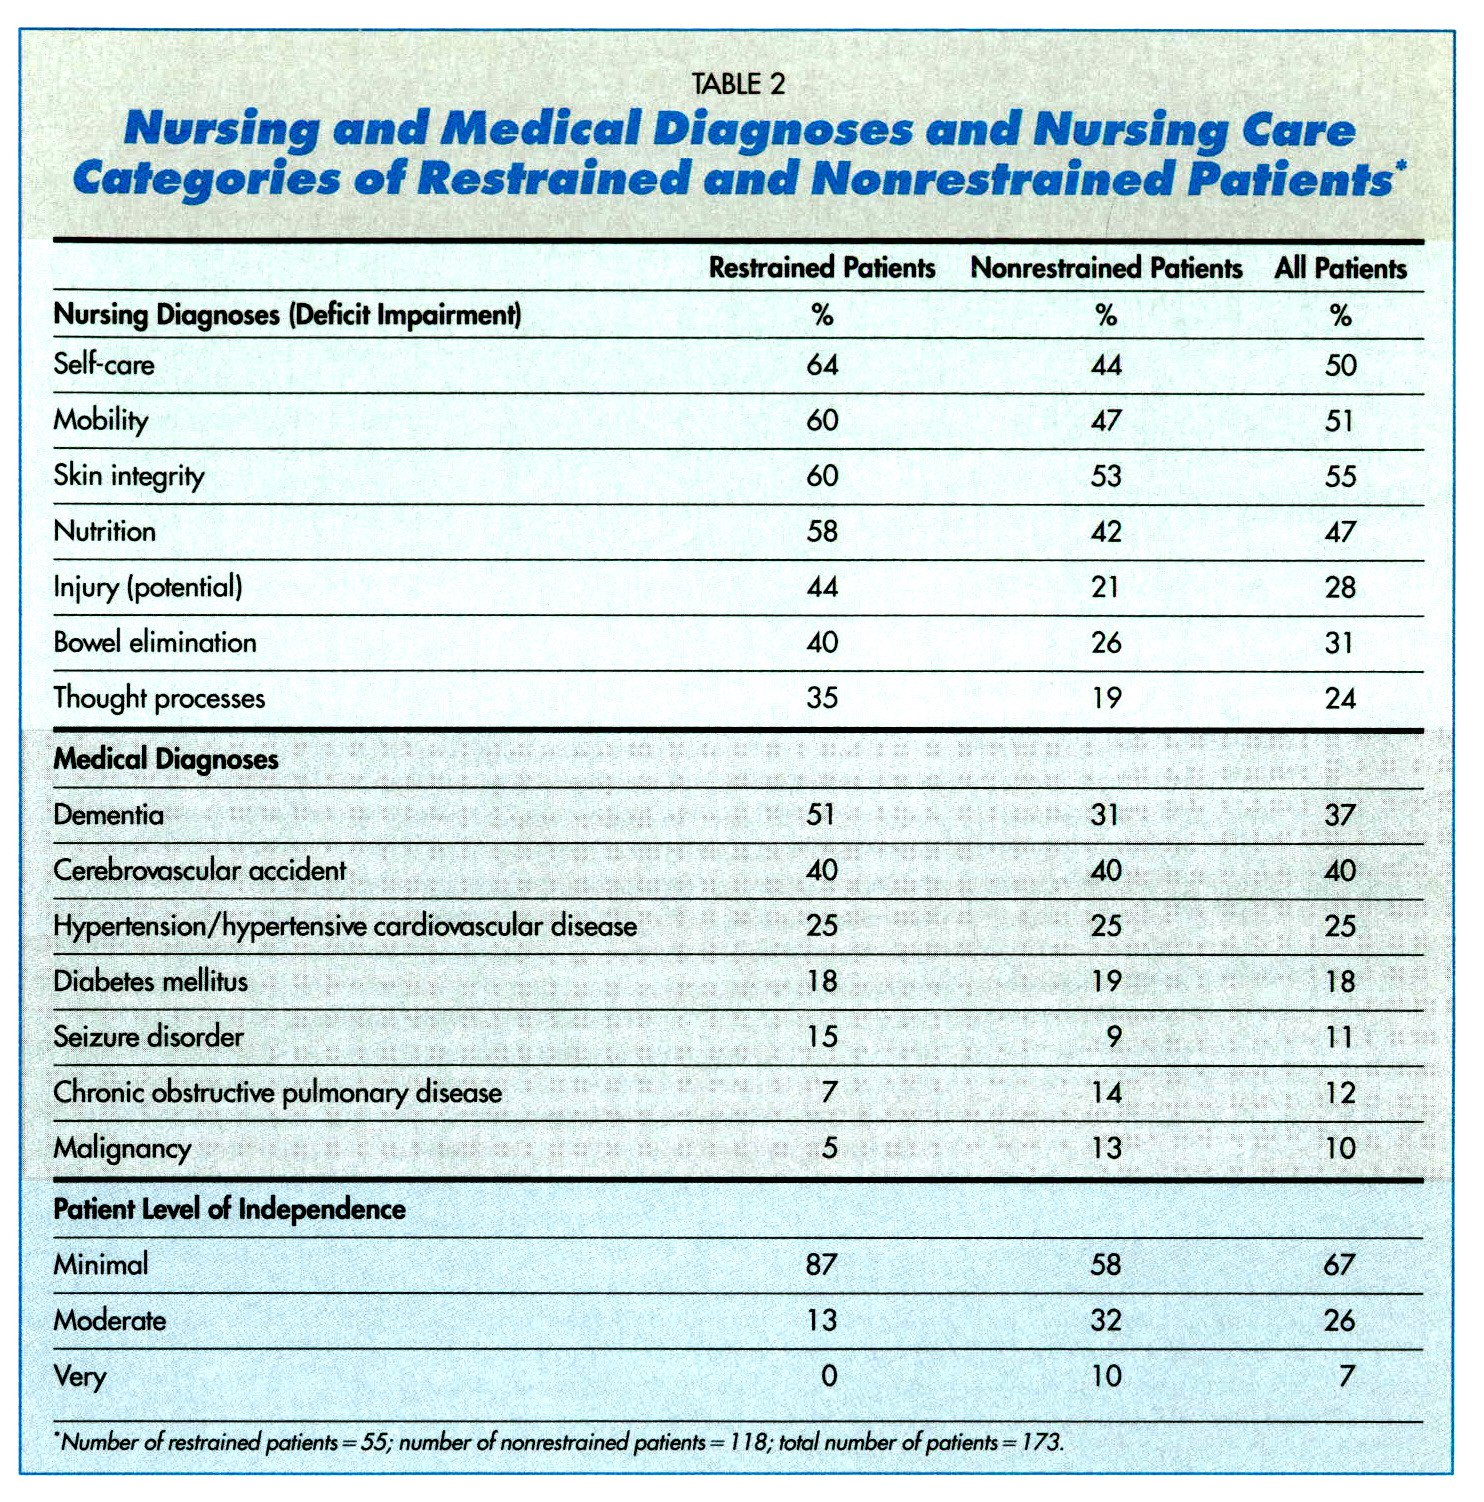 TABLE 2Nursing and Medical Diagnoses and Nursing Care Categories of Restrained and Nonreslrained Patients*